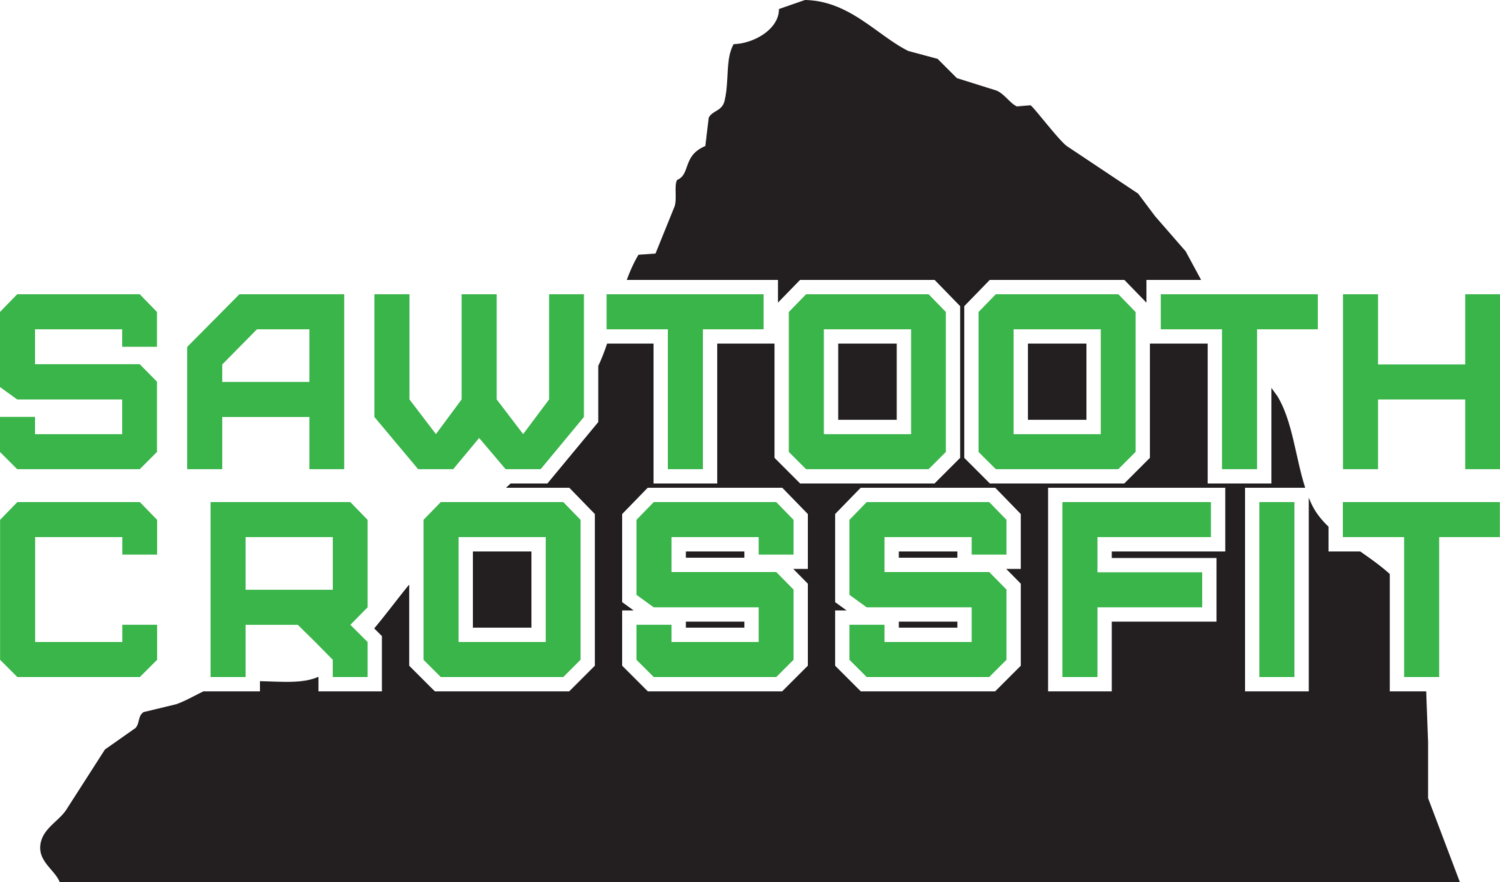 Sawtooth Crossfit